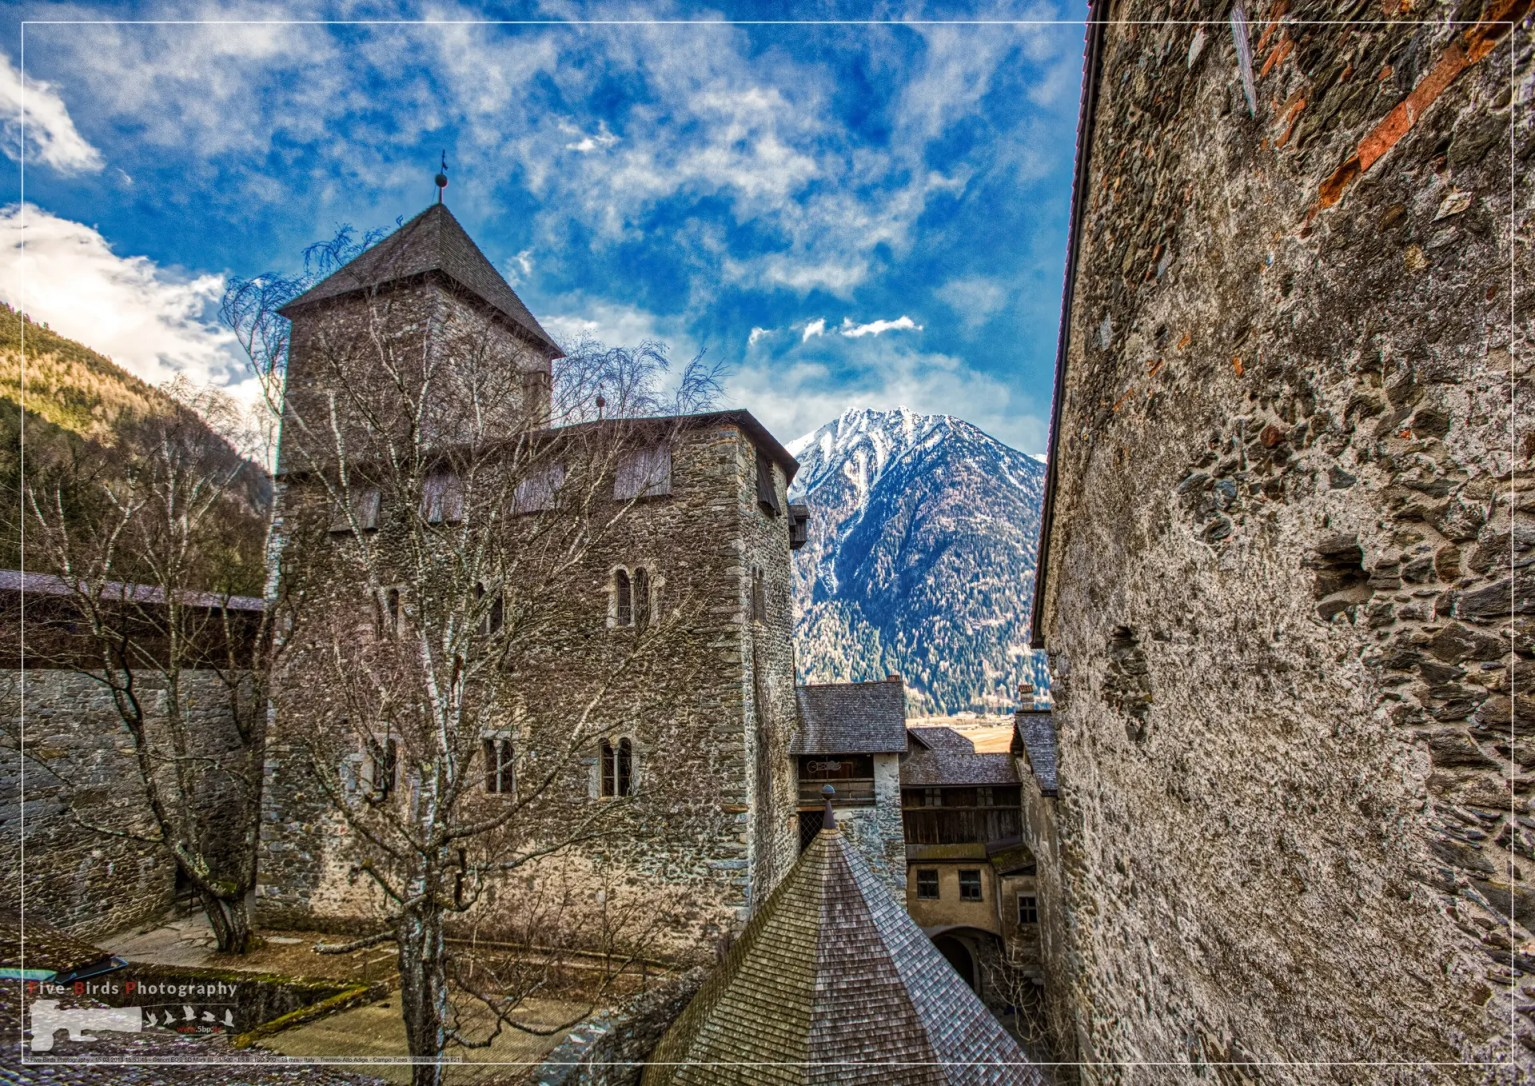 Shot of the Sand in Taufers castle in the Tyrolean Alps, Italy